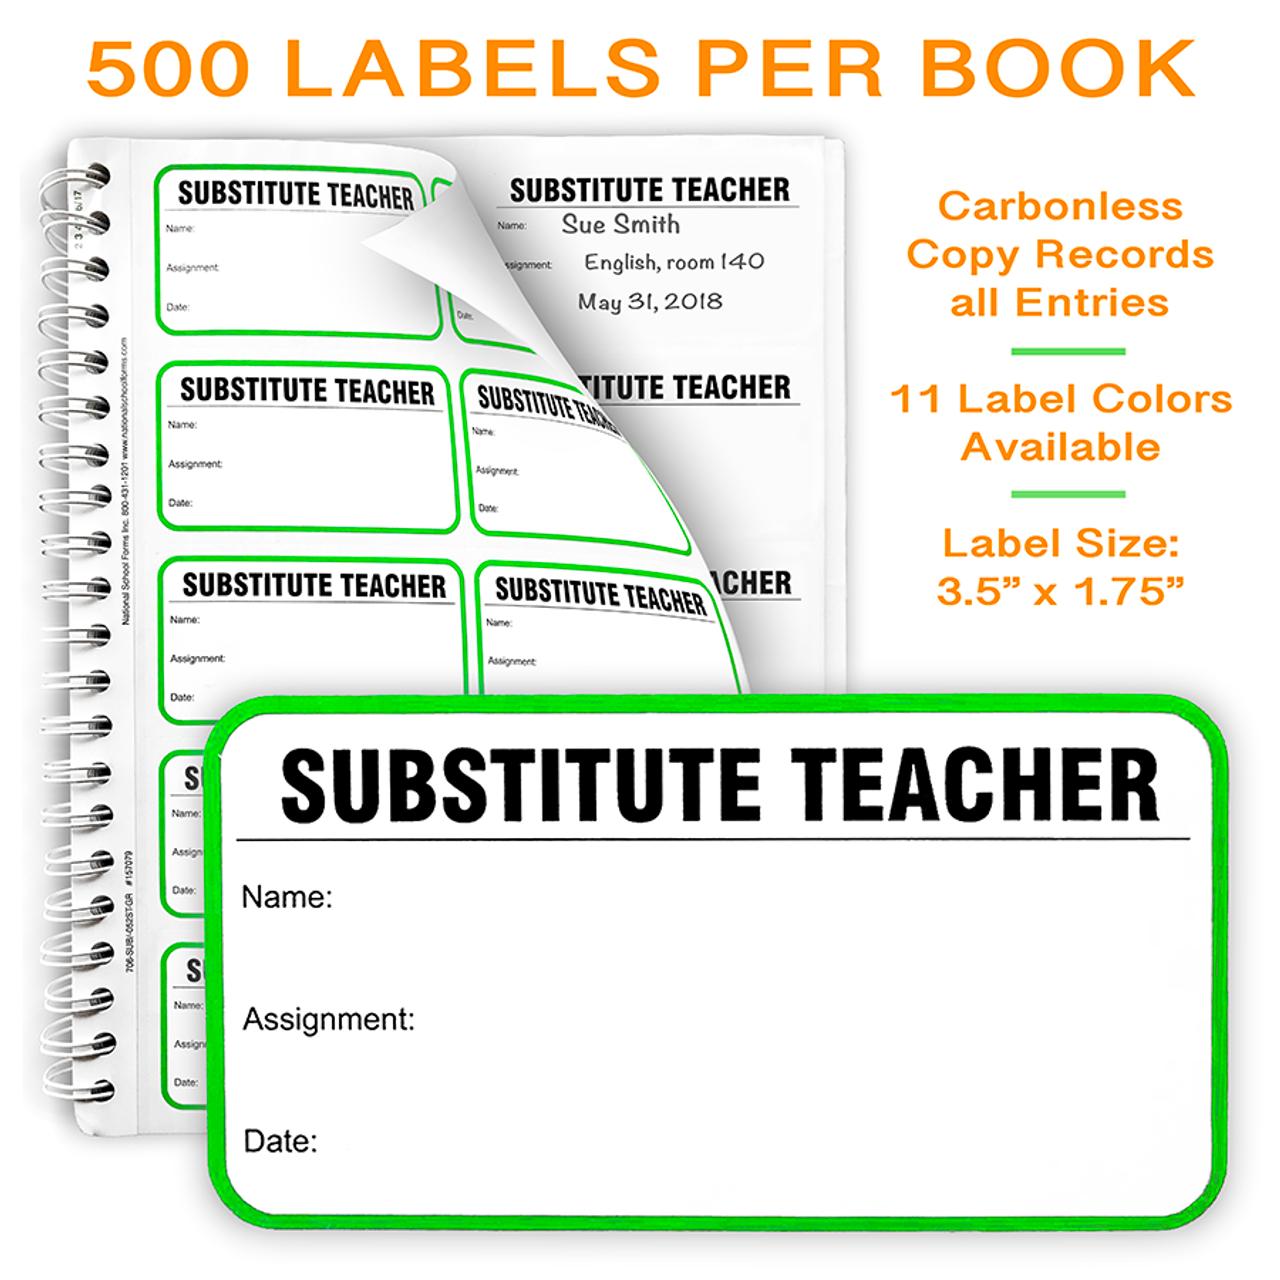 Substitute Teacher Label Book (500 Labels per Book)